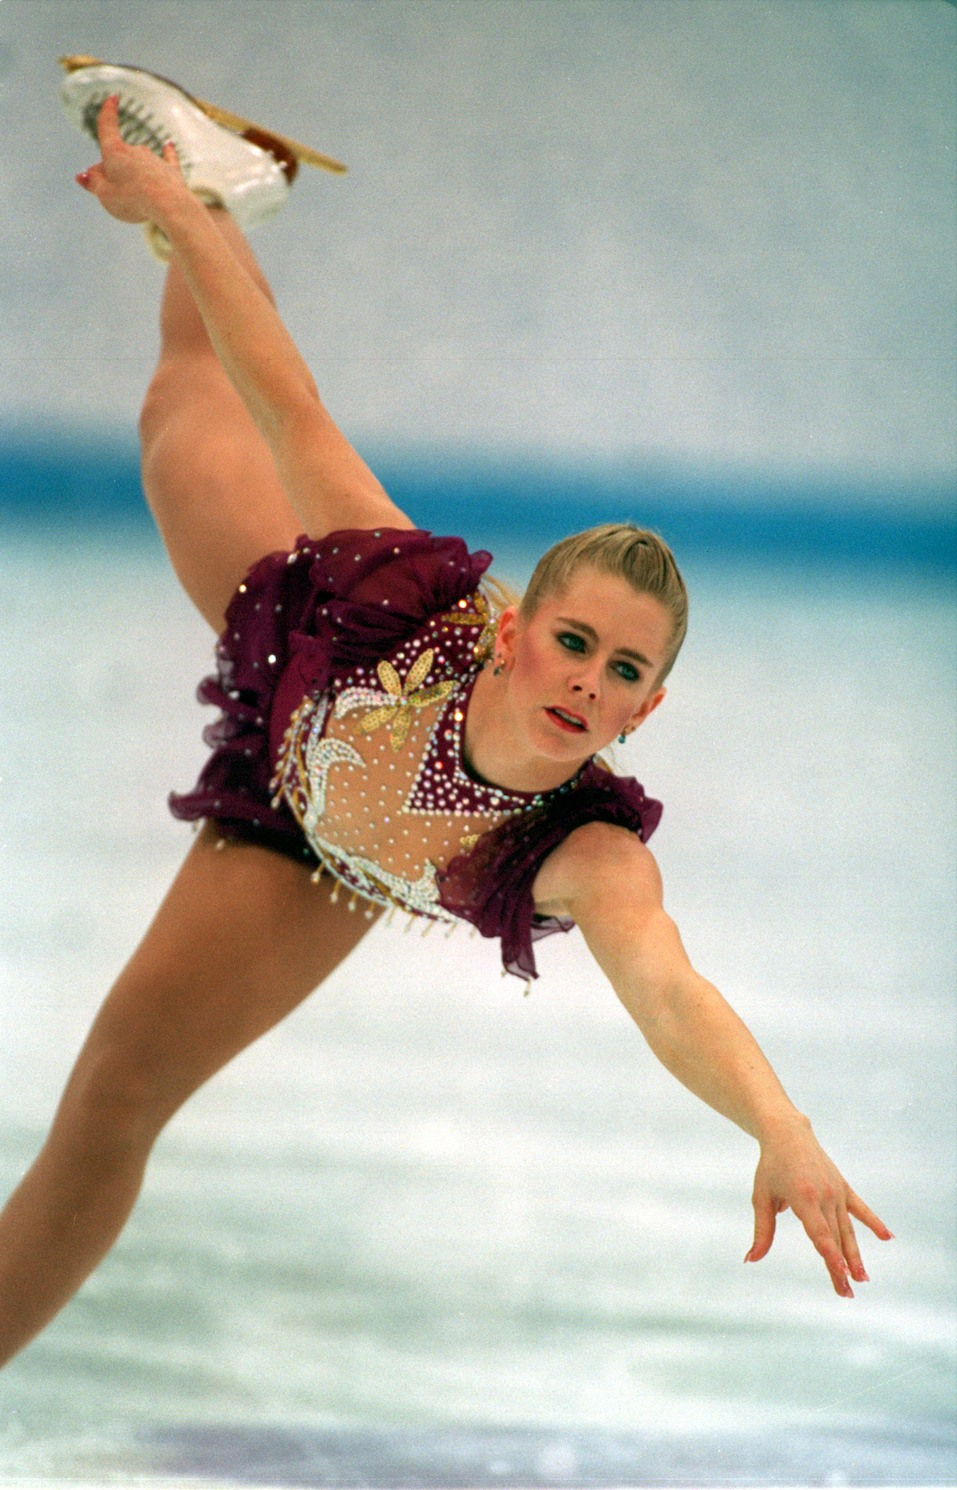 TONYA HARDING OF THE UNITED STATES IN ACTION IN THE FREE PROGRAM AT THE 1994 LILLEHAMMER WINTER OLYMPICS